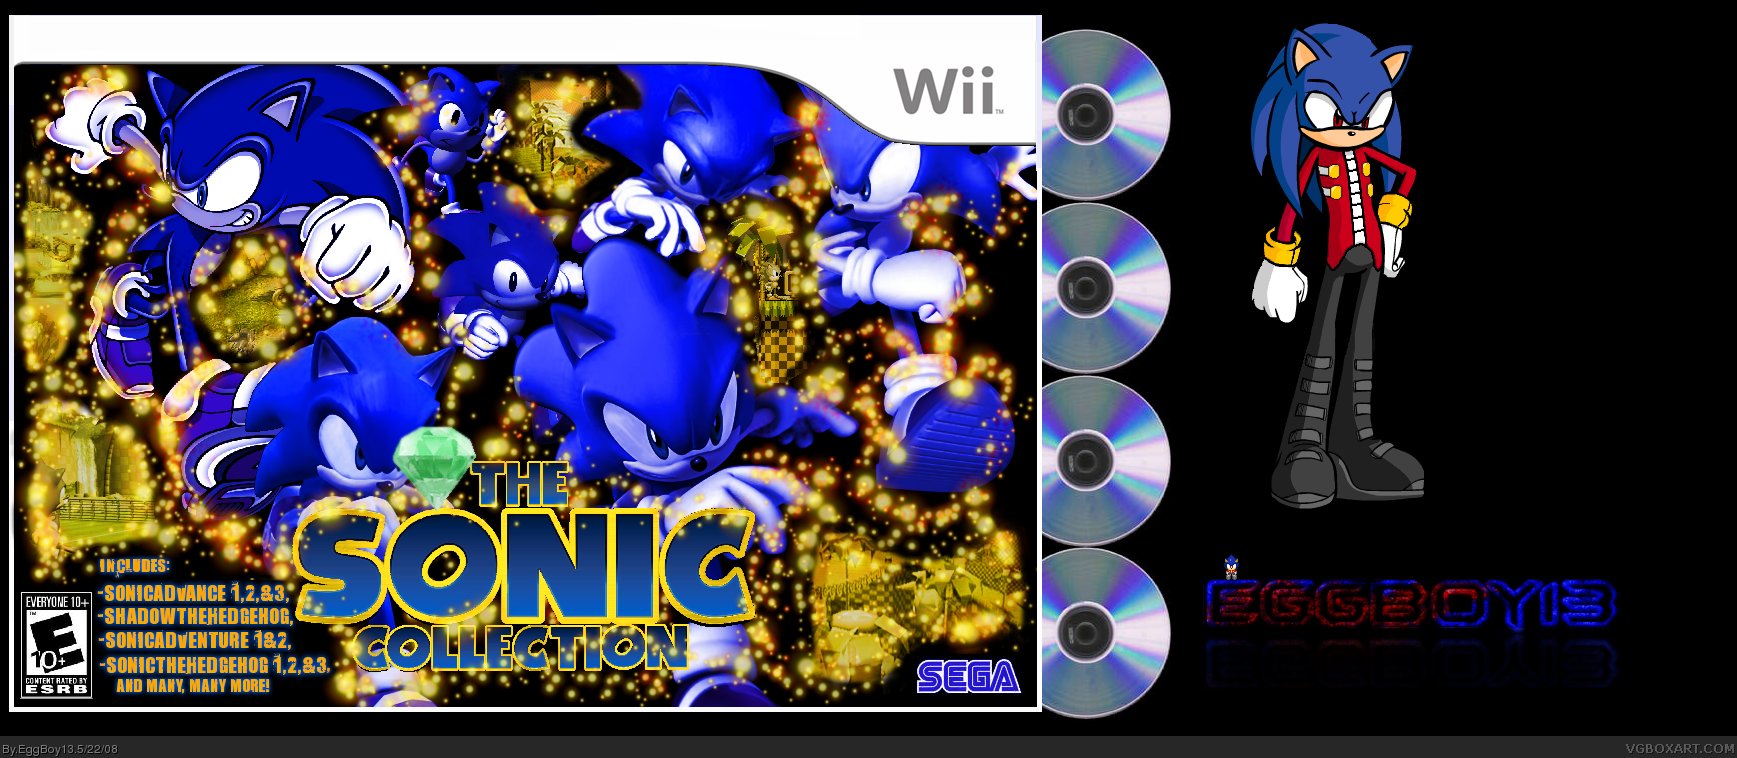 The Sonic Collection box cover